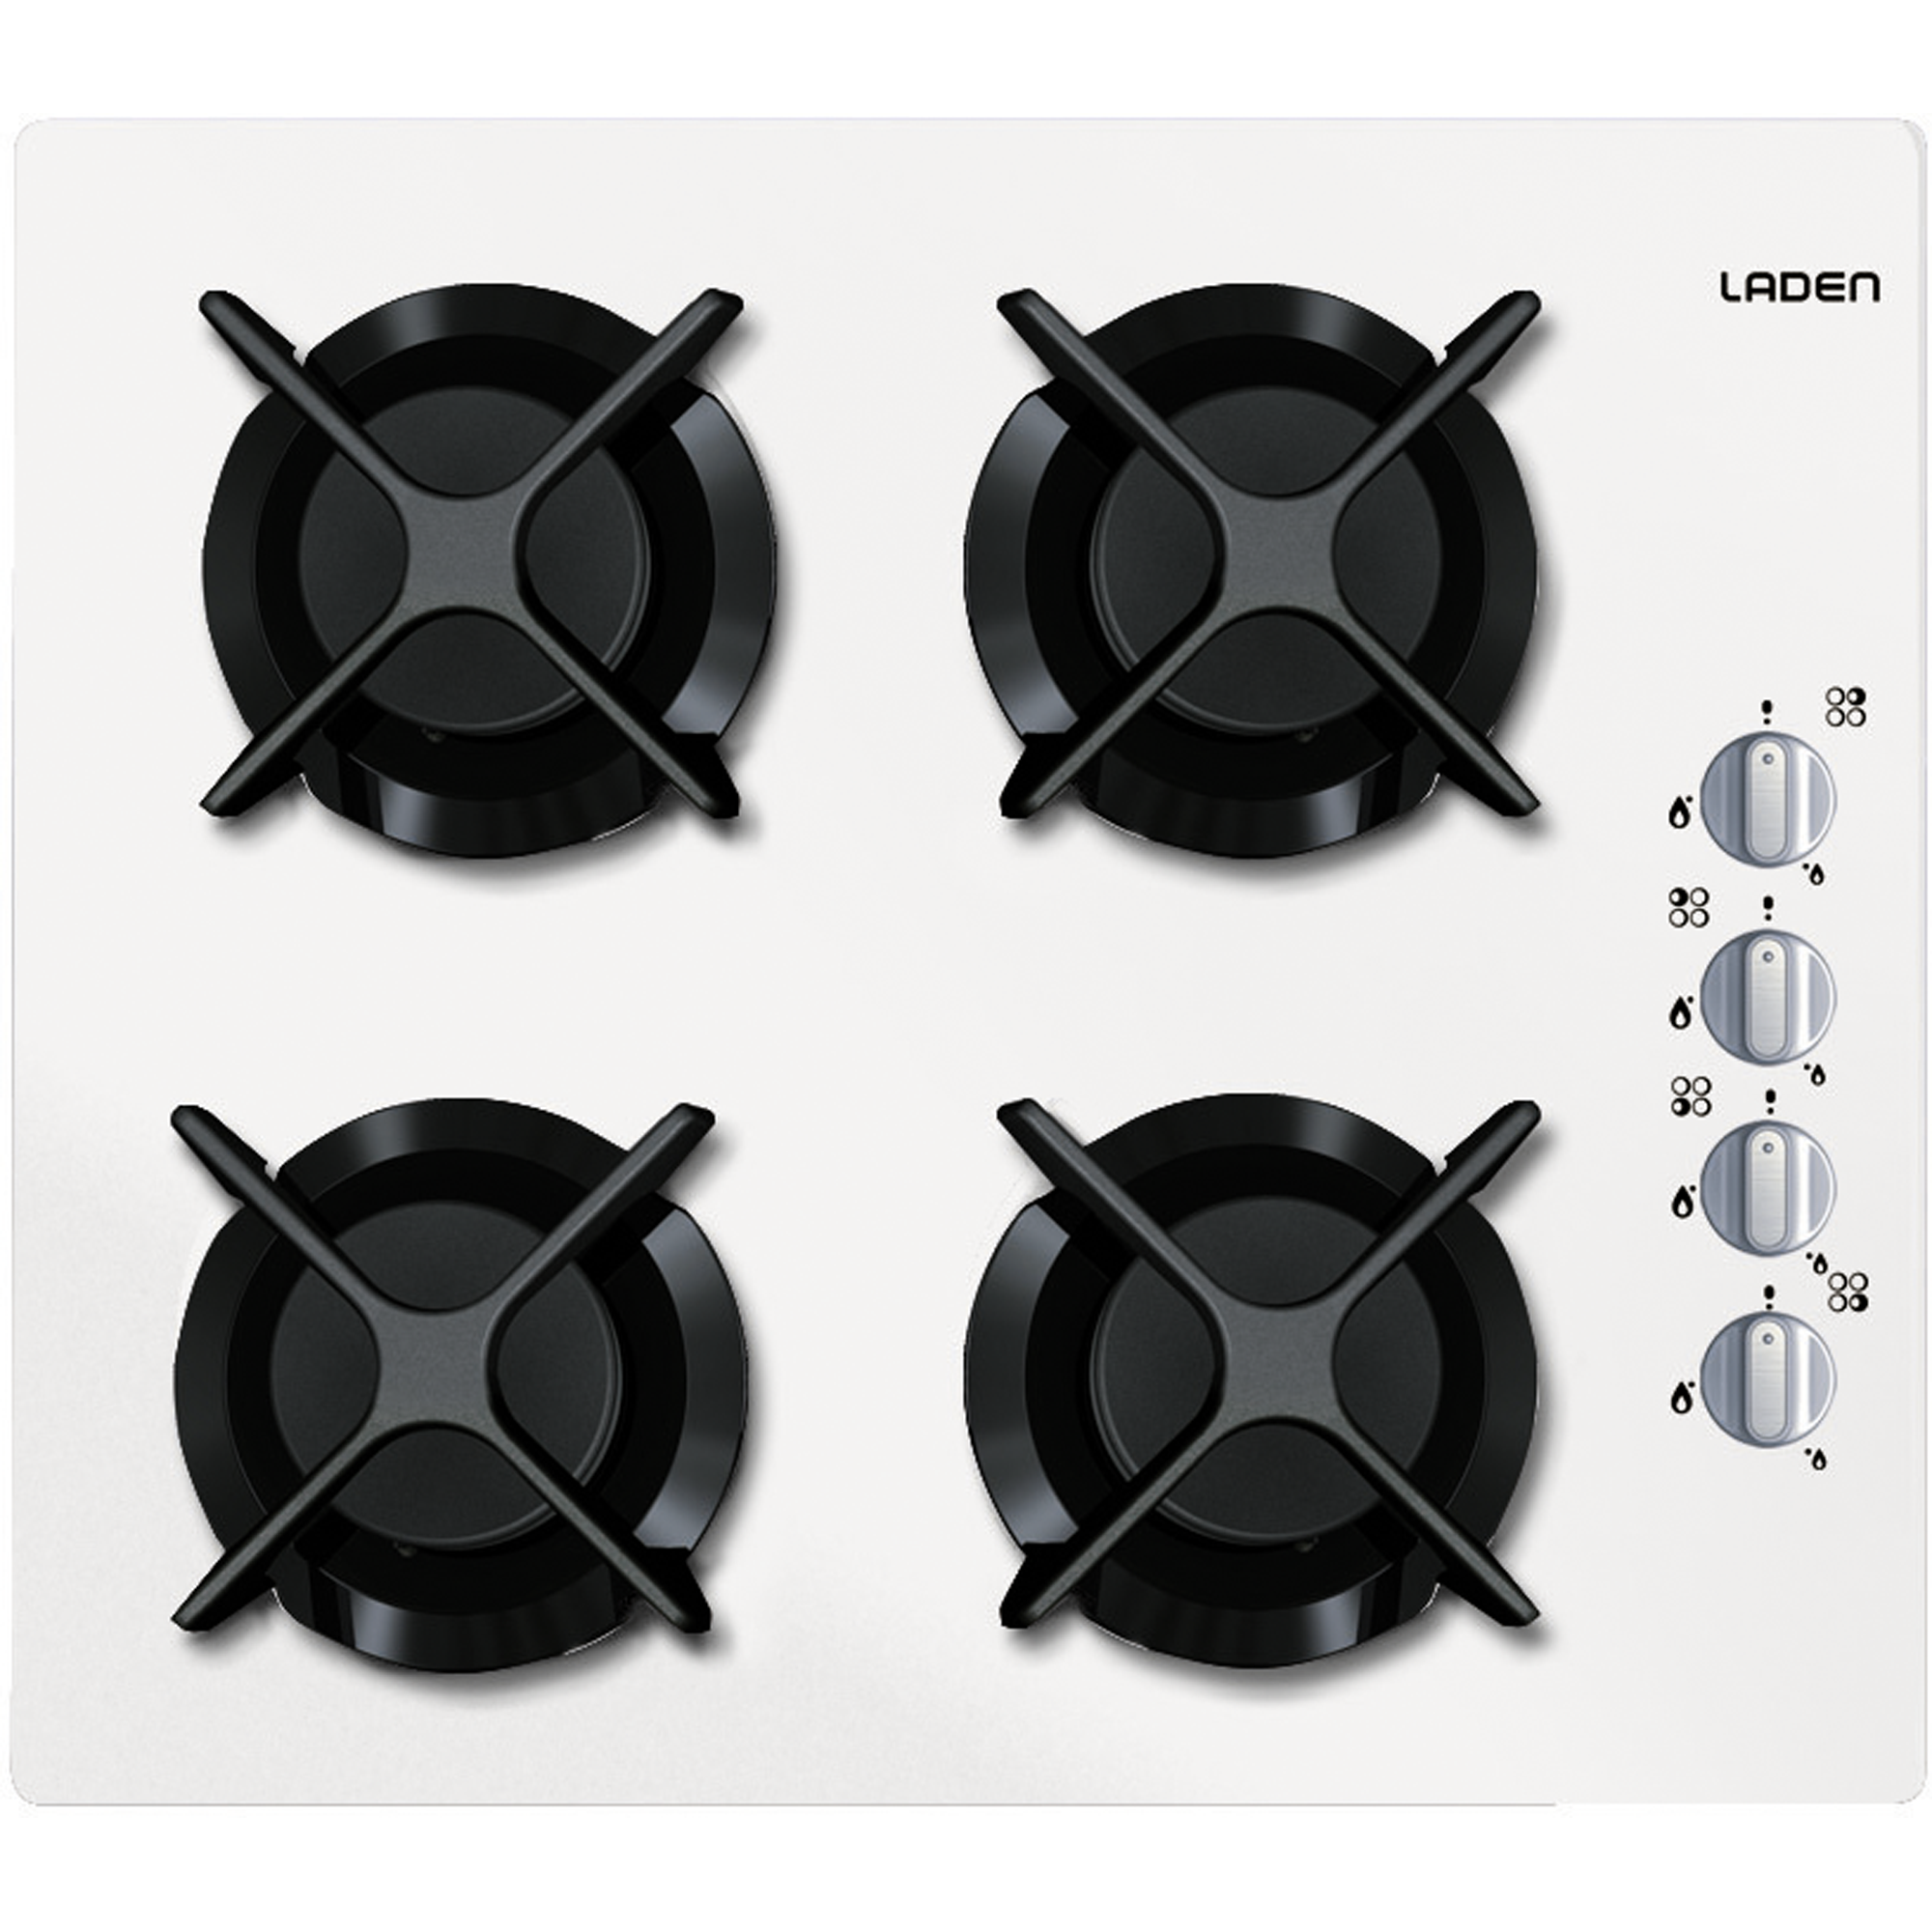 appareils lectrom nagers laden le choix malin plaque de cuisson gaz sur verre pgv 300 wh. Black Bedroom Furniture Sets. Home Design Ideas